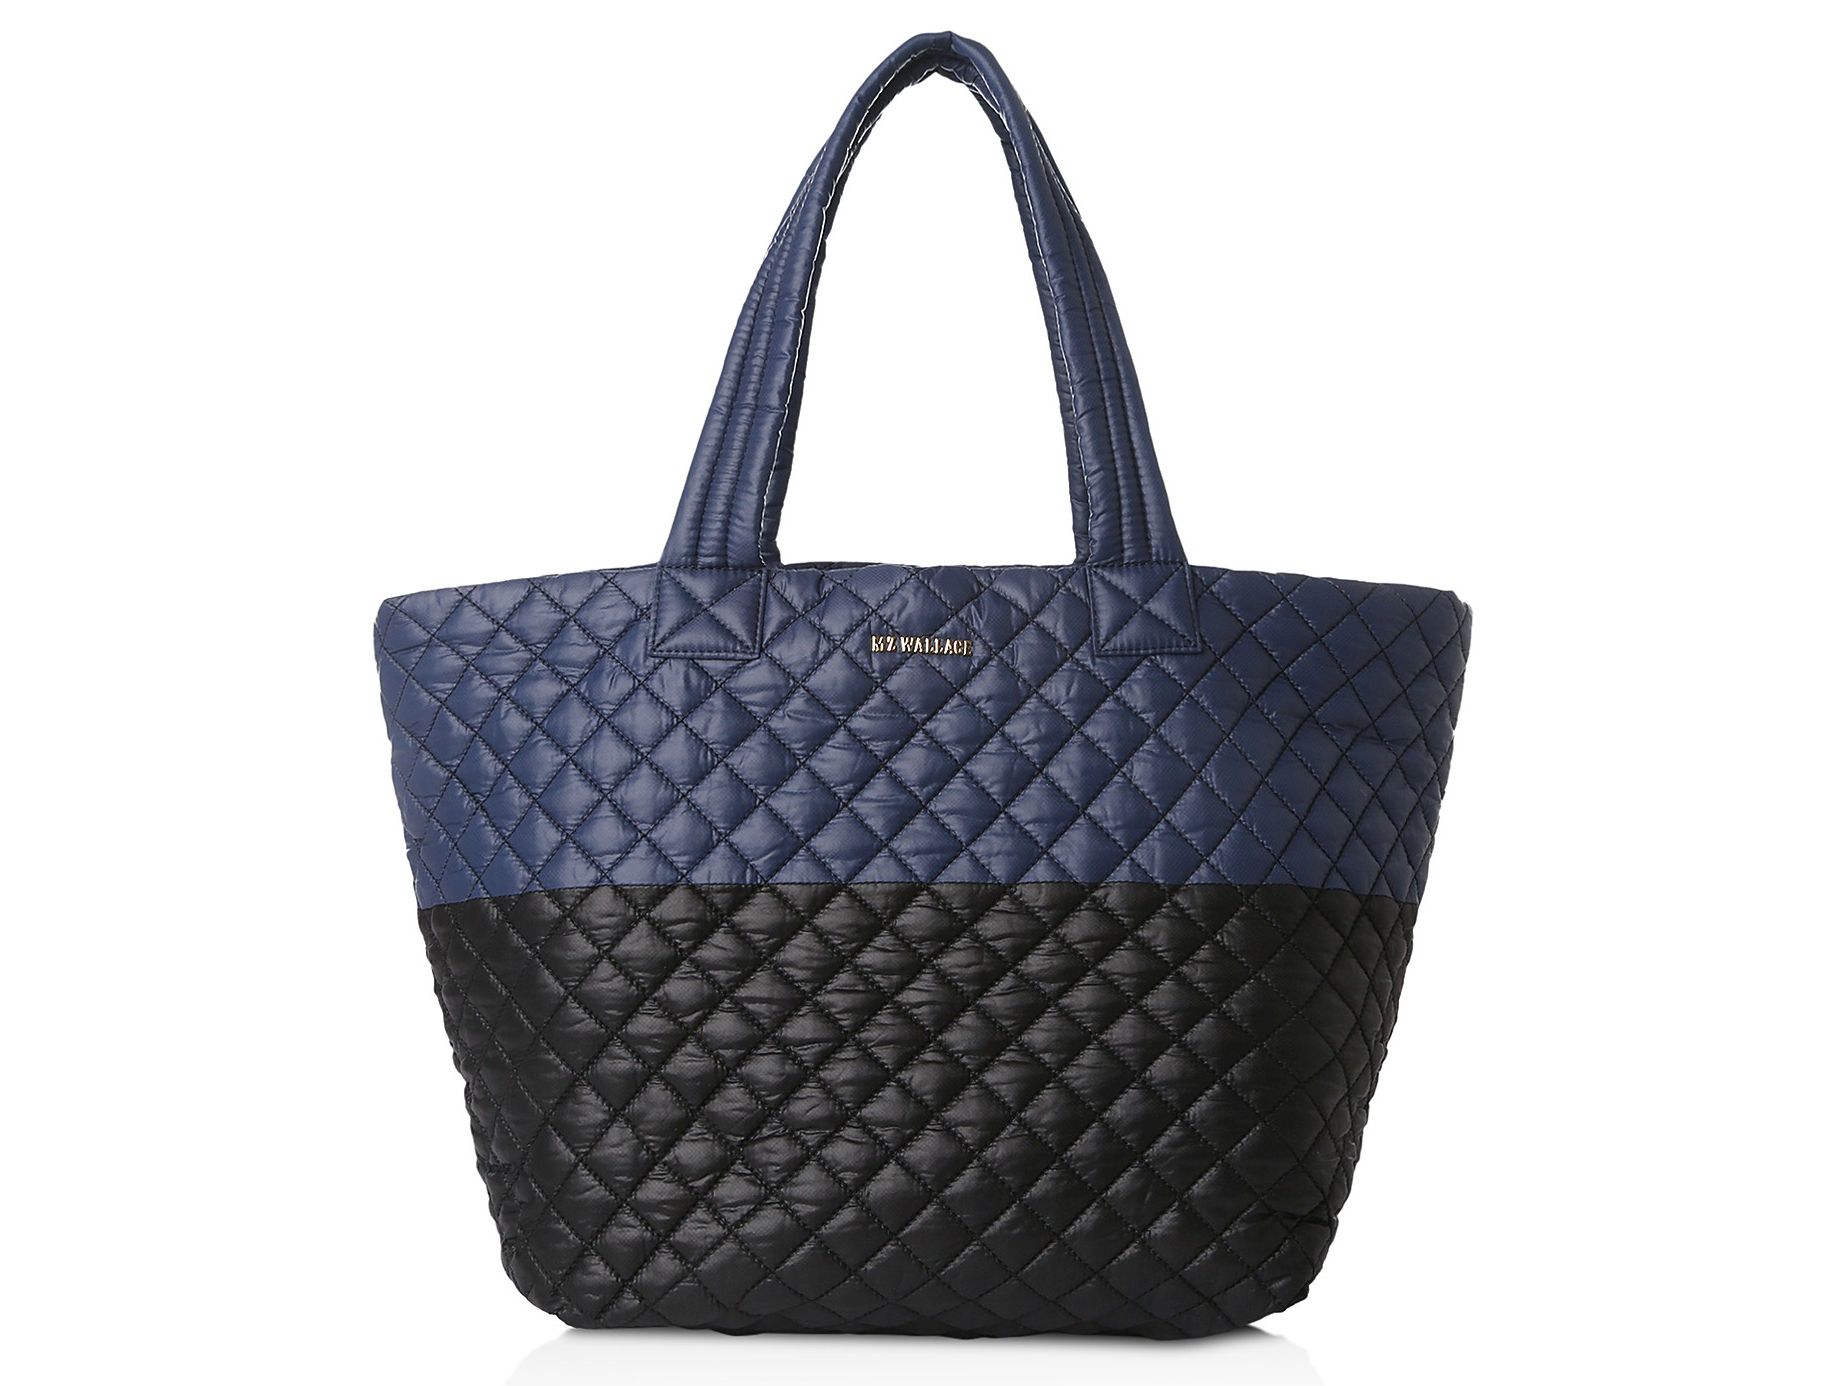 Best gym bags 14 MZ Wallace from Bloomingdales